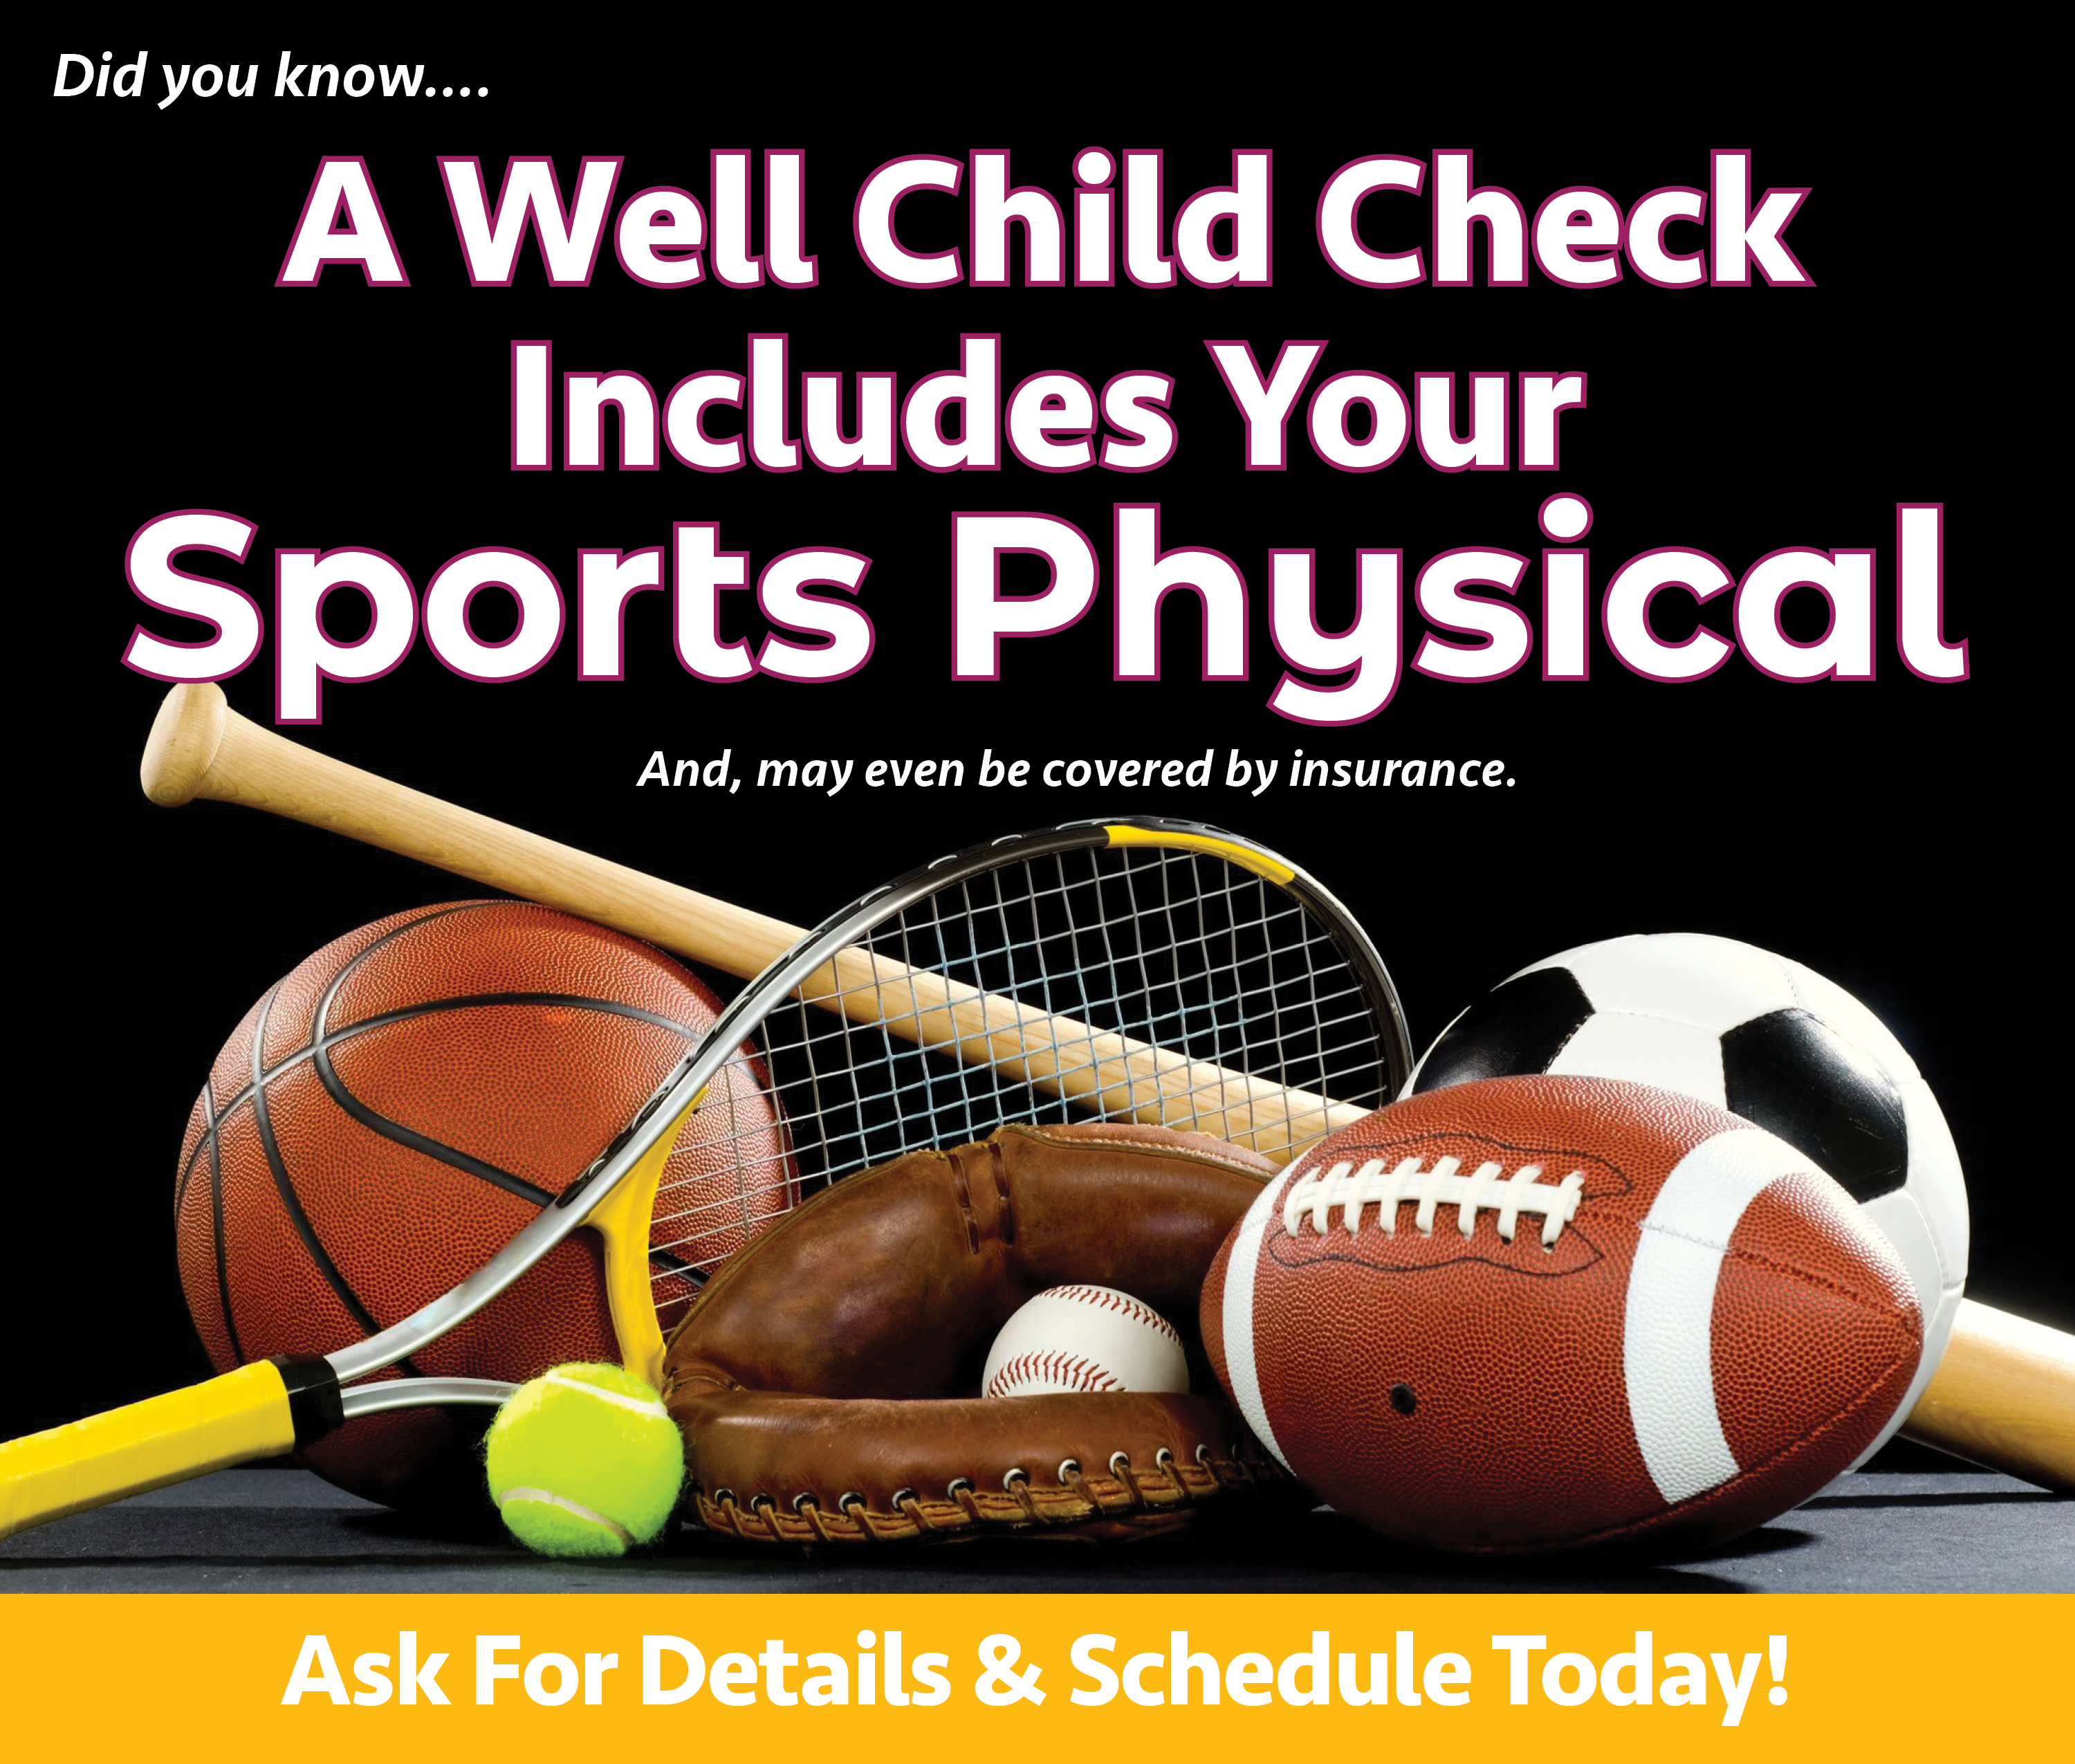 sports physical form nebraska  Saunders Medical Center : Family Clinic : School Physicals